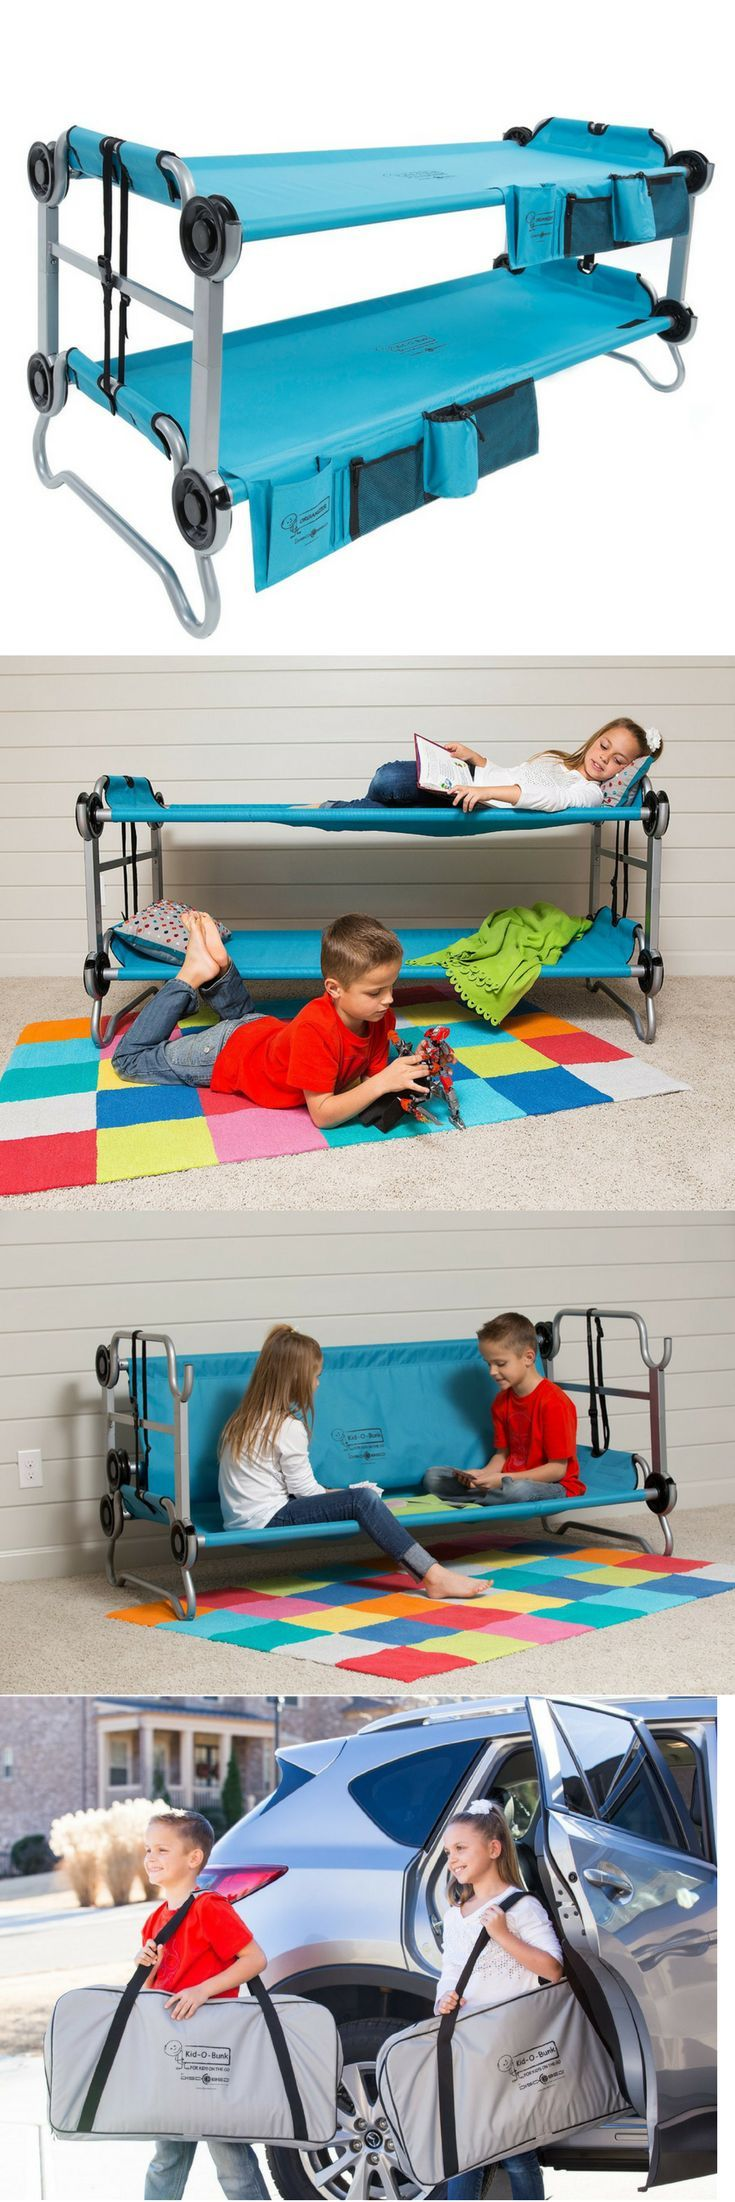 How cool are these traveling bunk beds? I would have loved